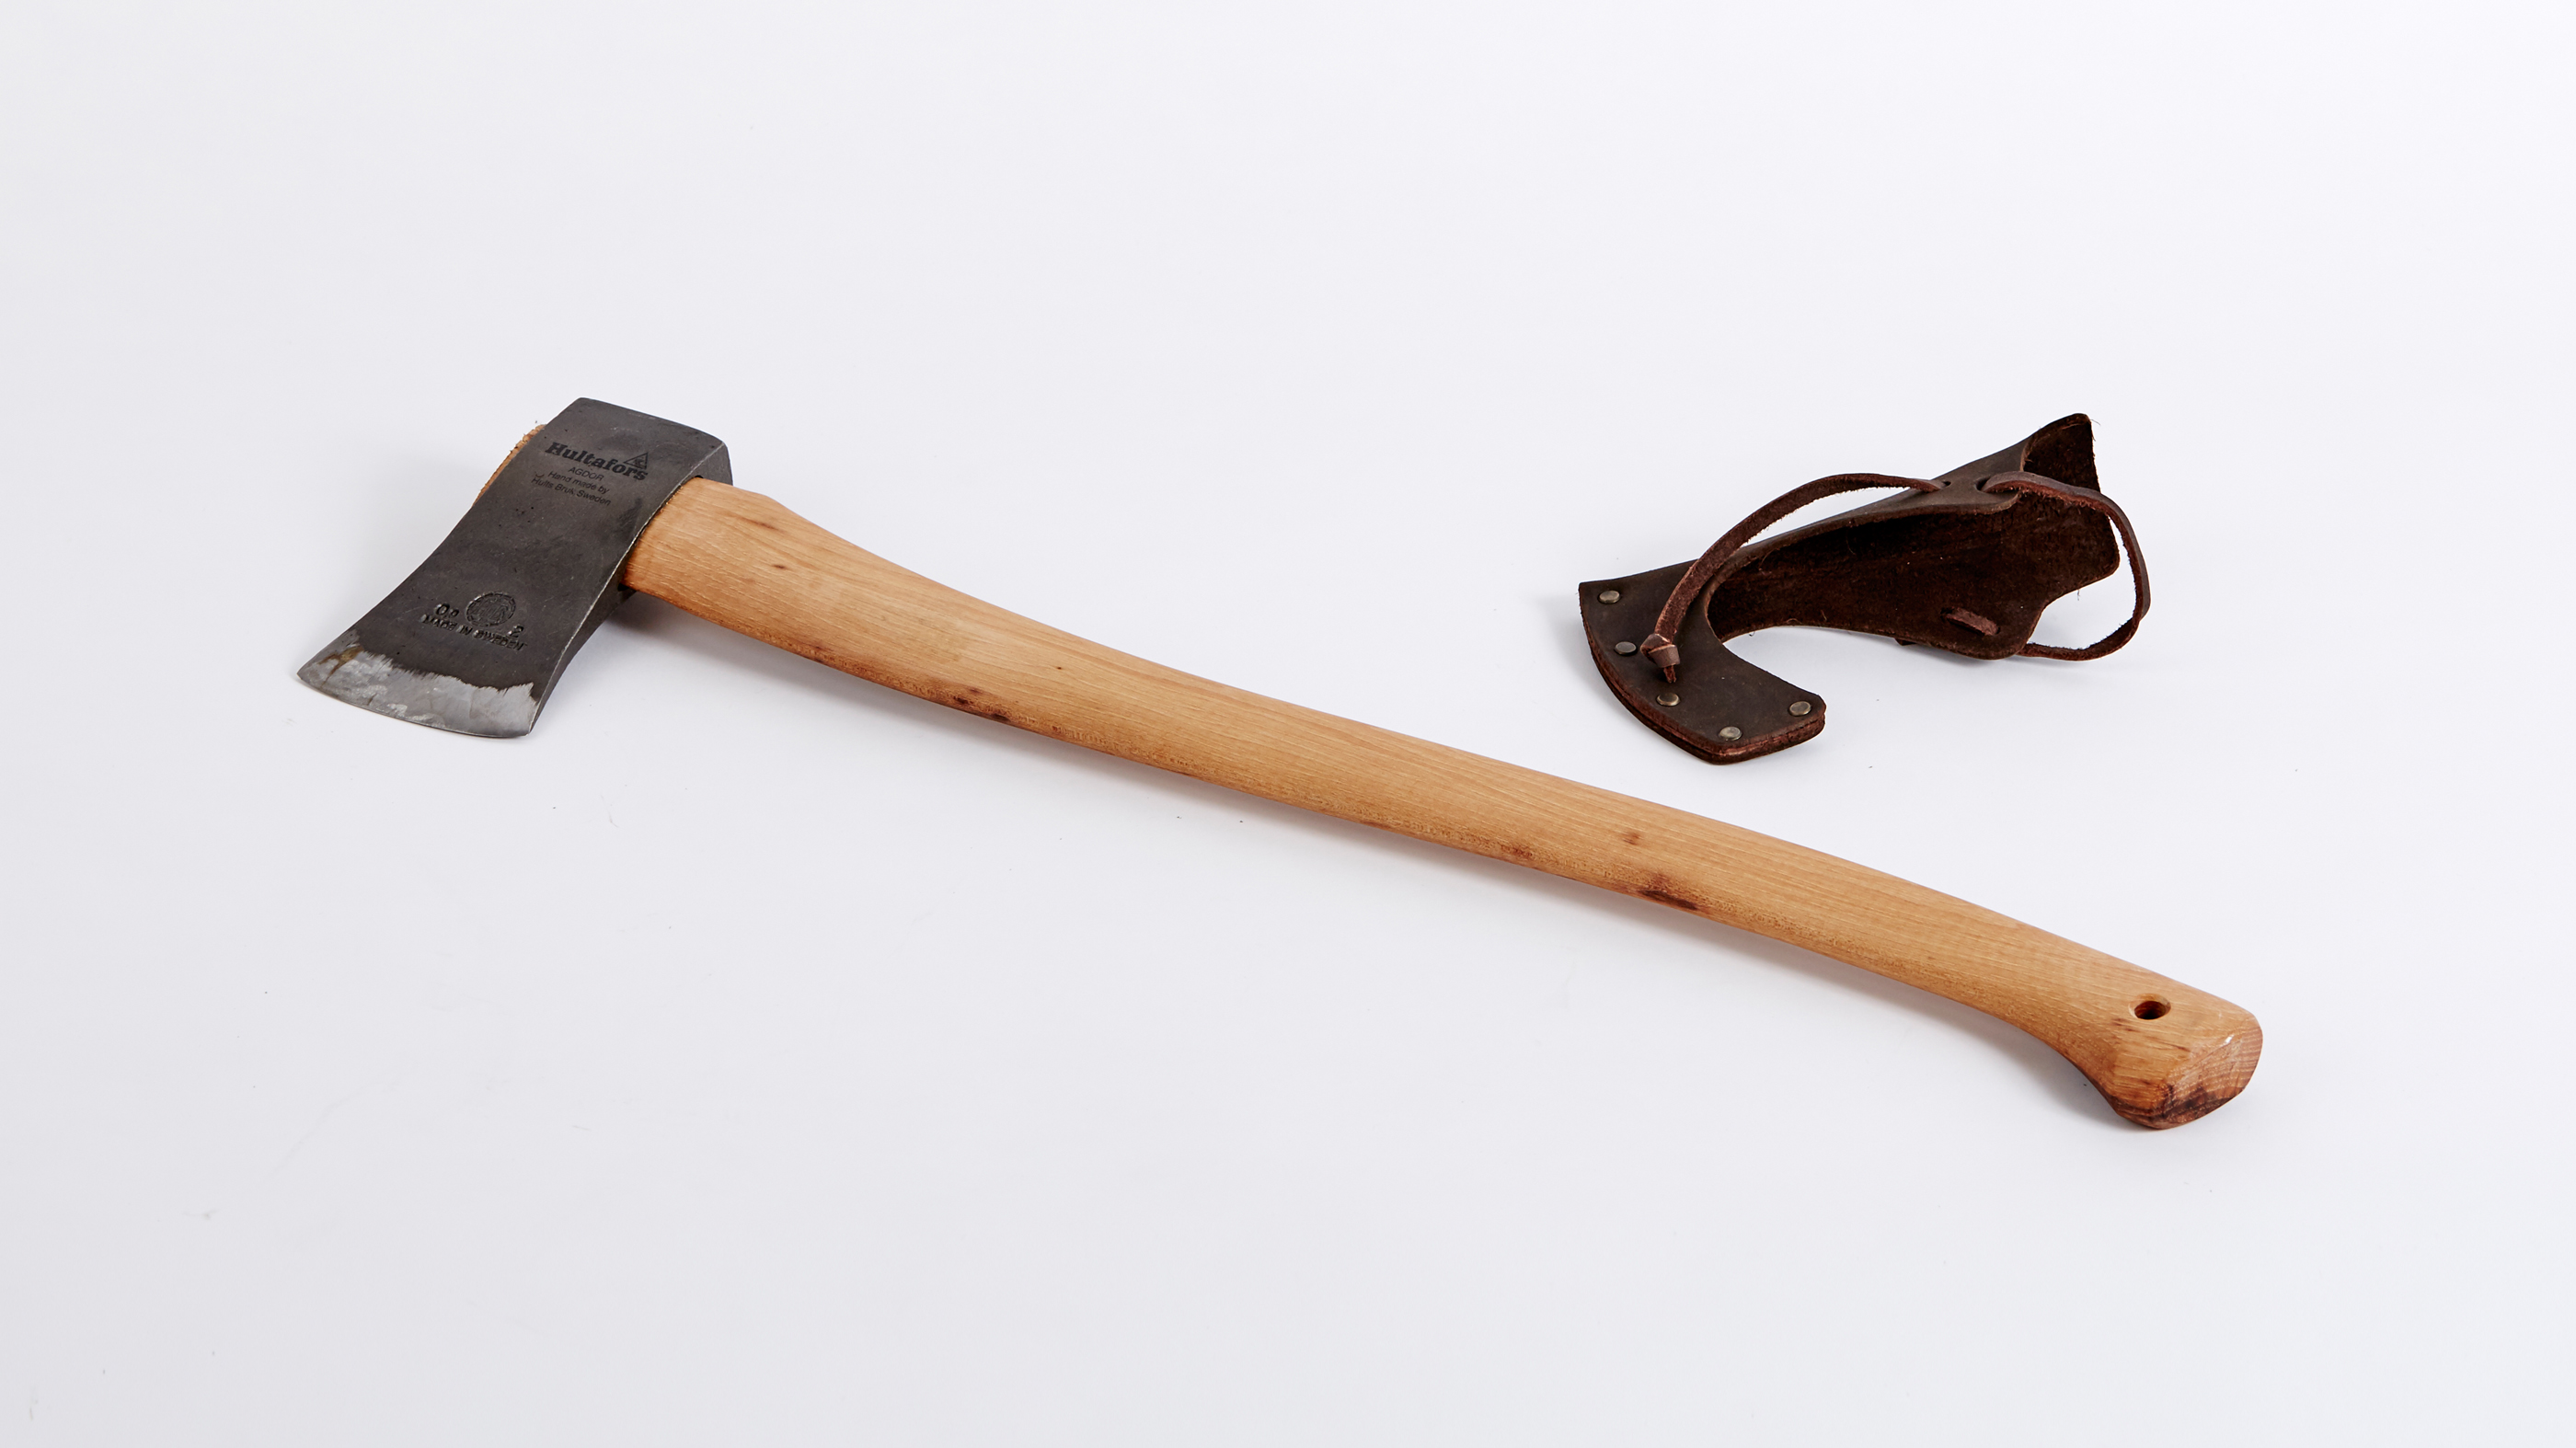 Hultafors Classic Hunting 850G Axe side